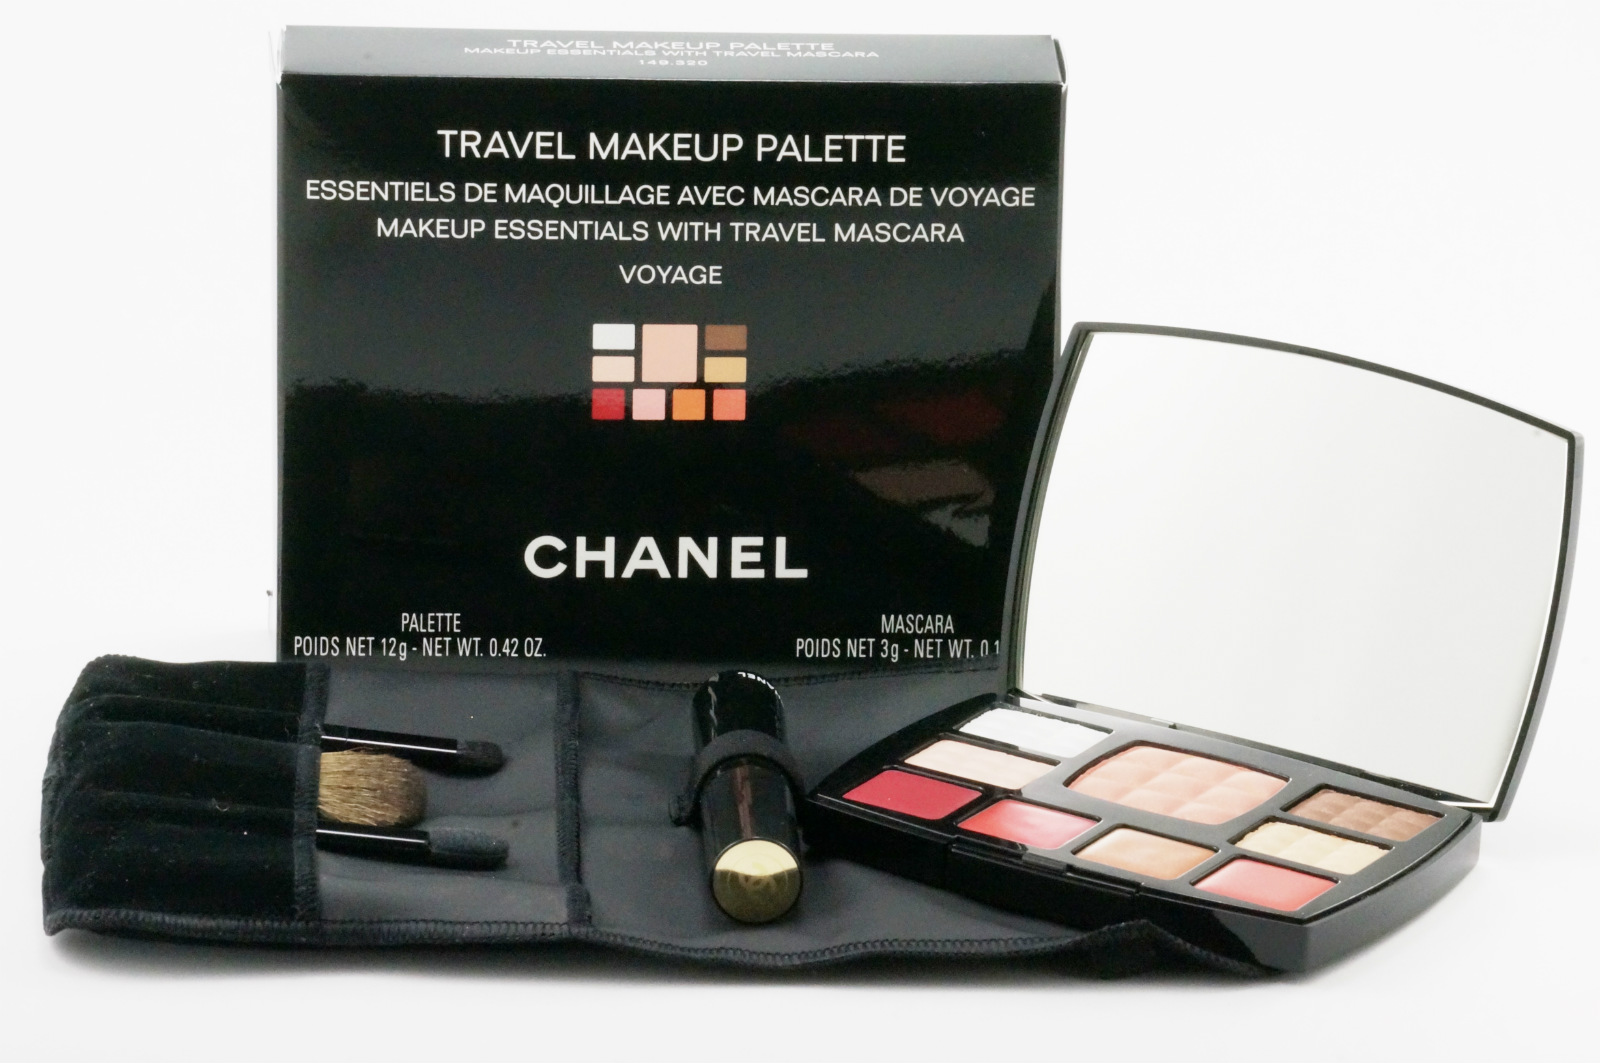 Chanel Travel Makeup Palette Voyage Review - Makeup Tips And Trick